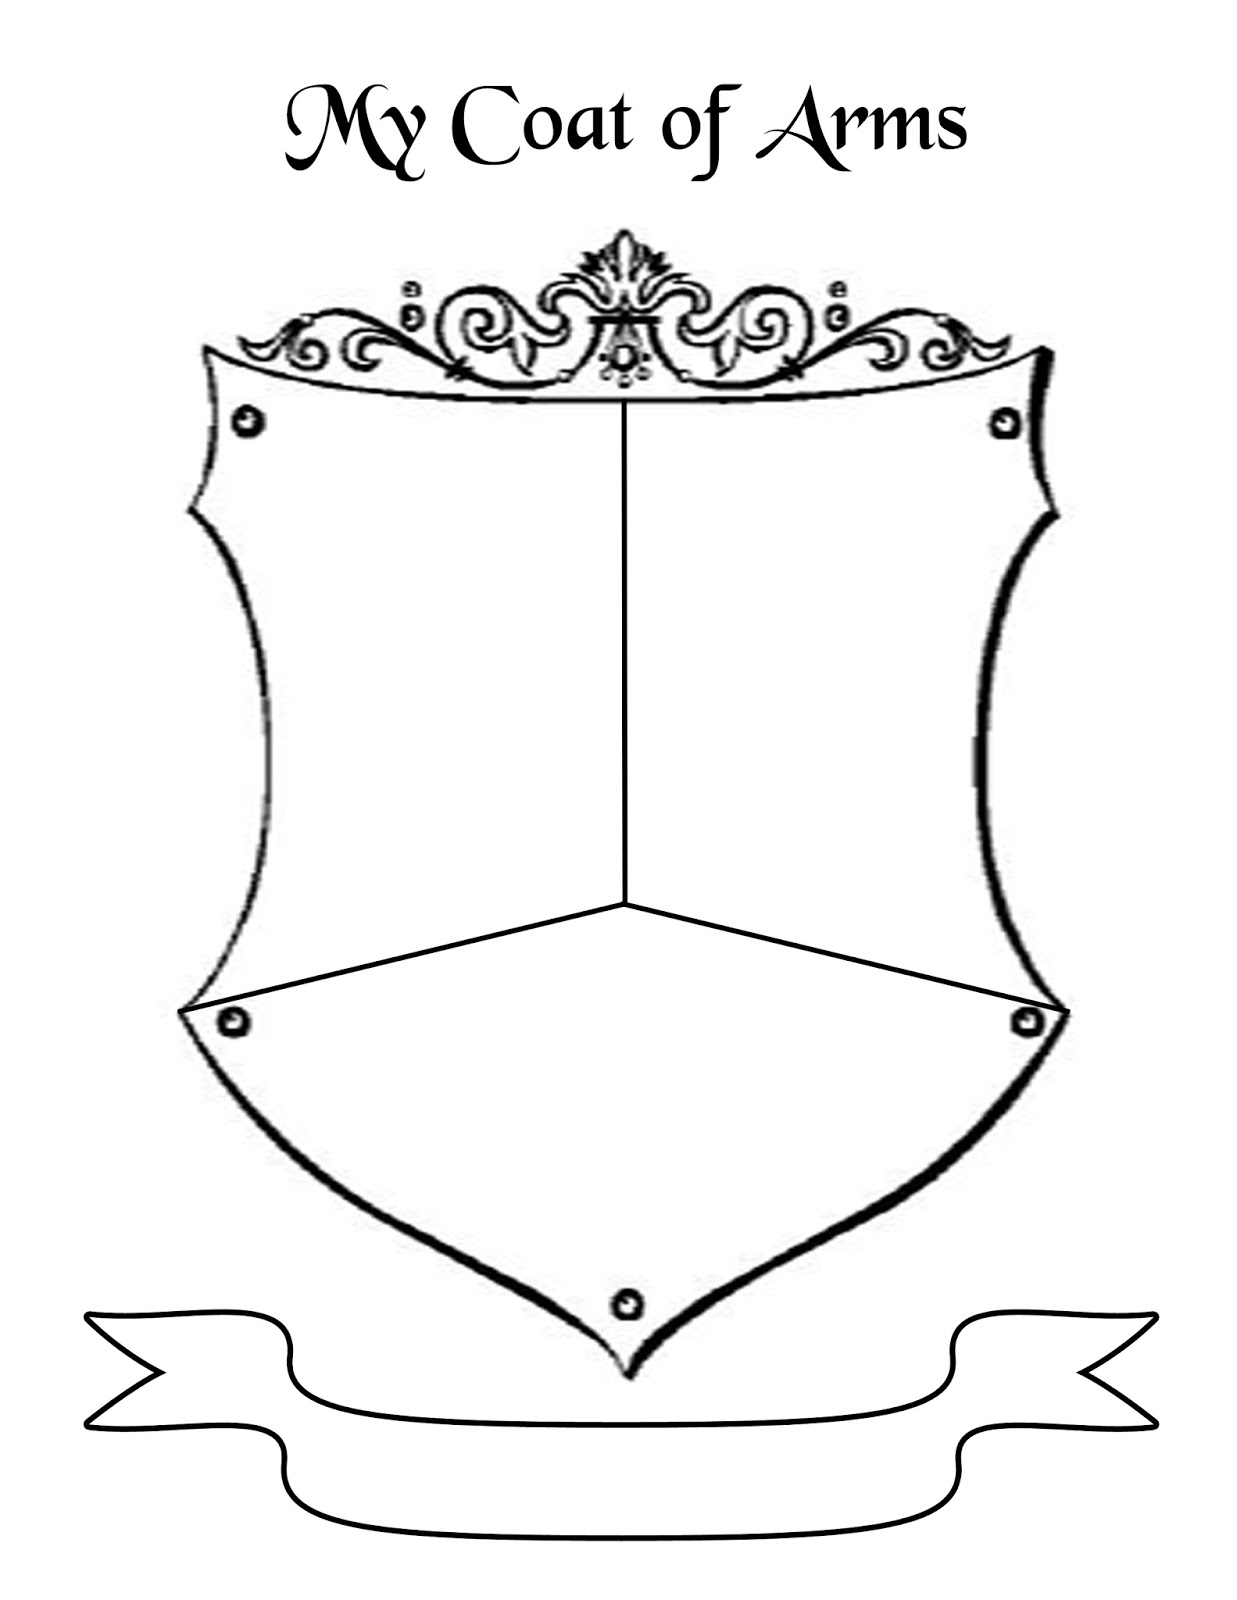 Coat Of Arms Template Pdf First  I had them come up with